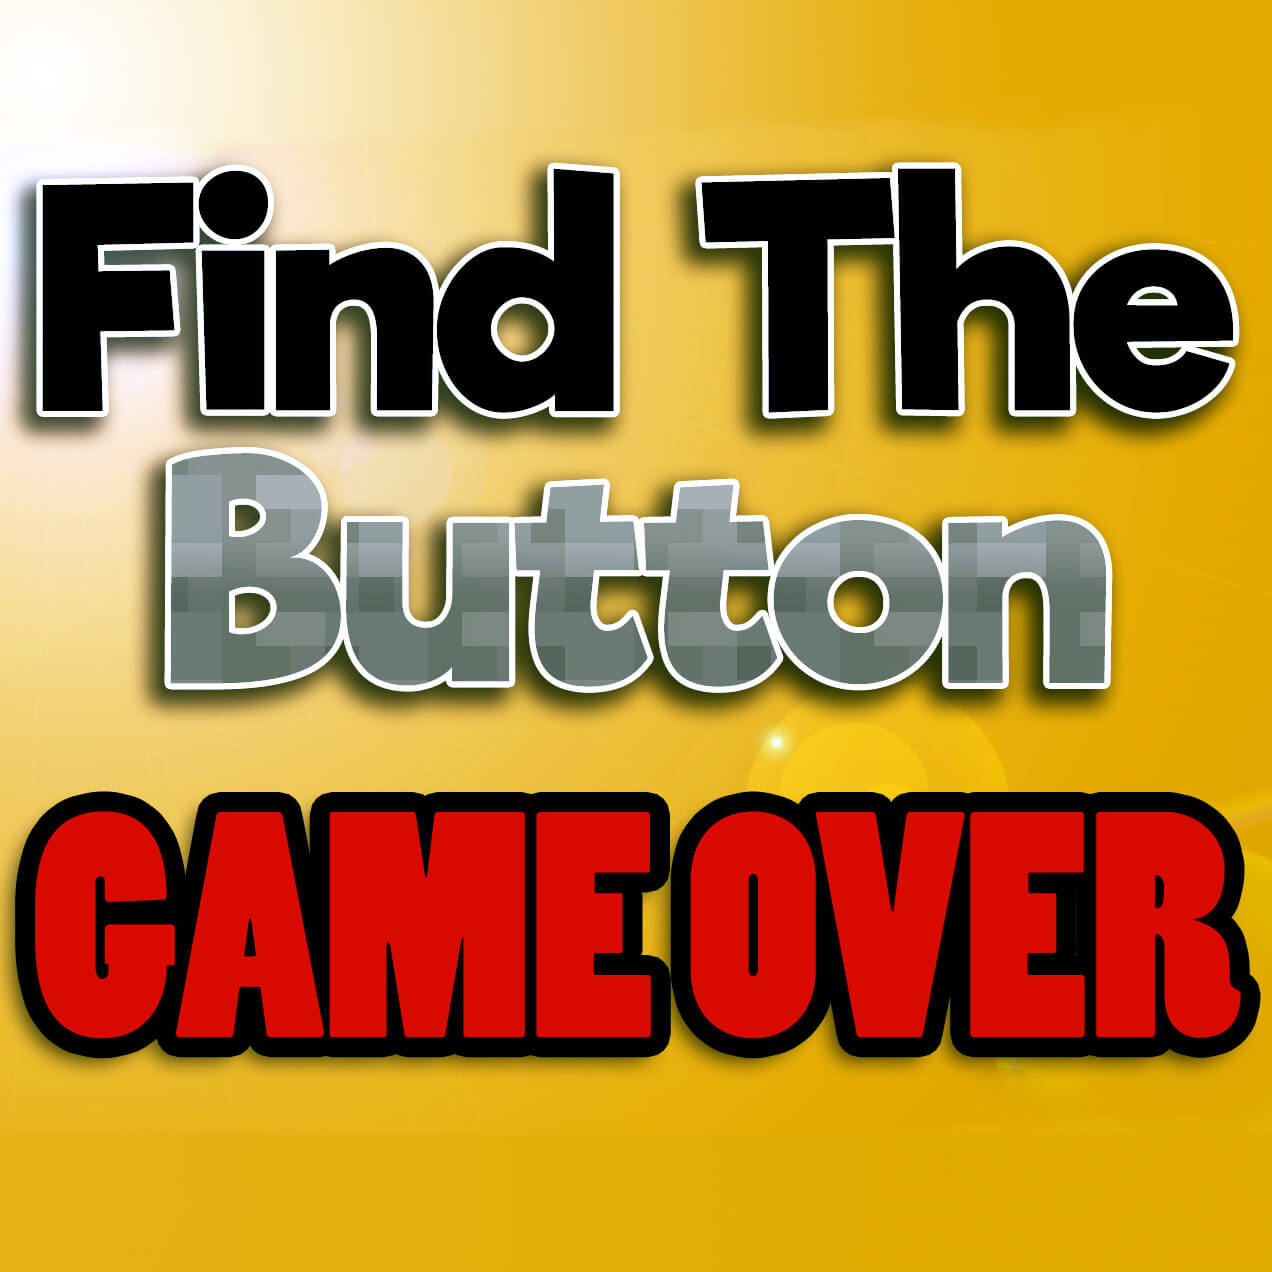 Find The Button - Game Over screenshot 1